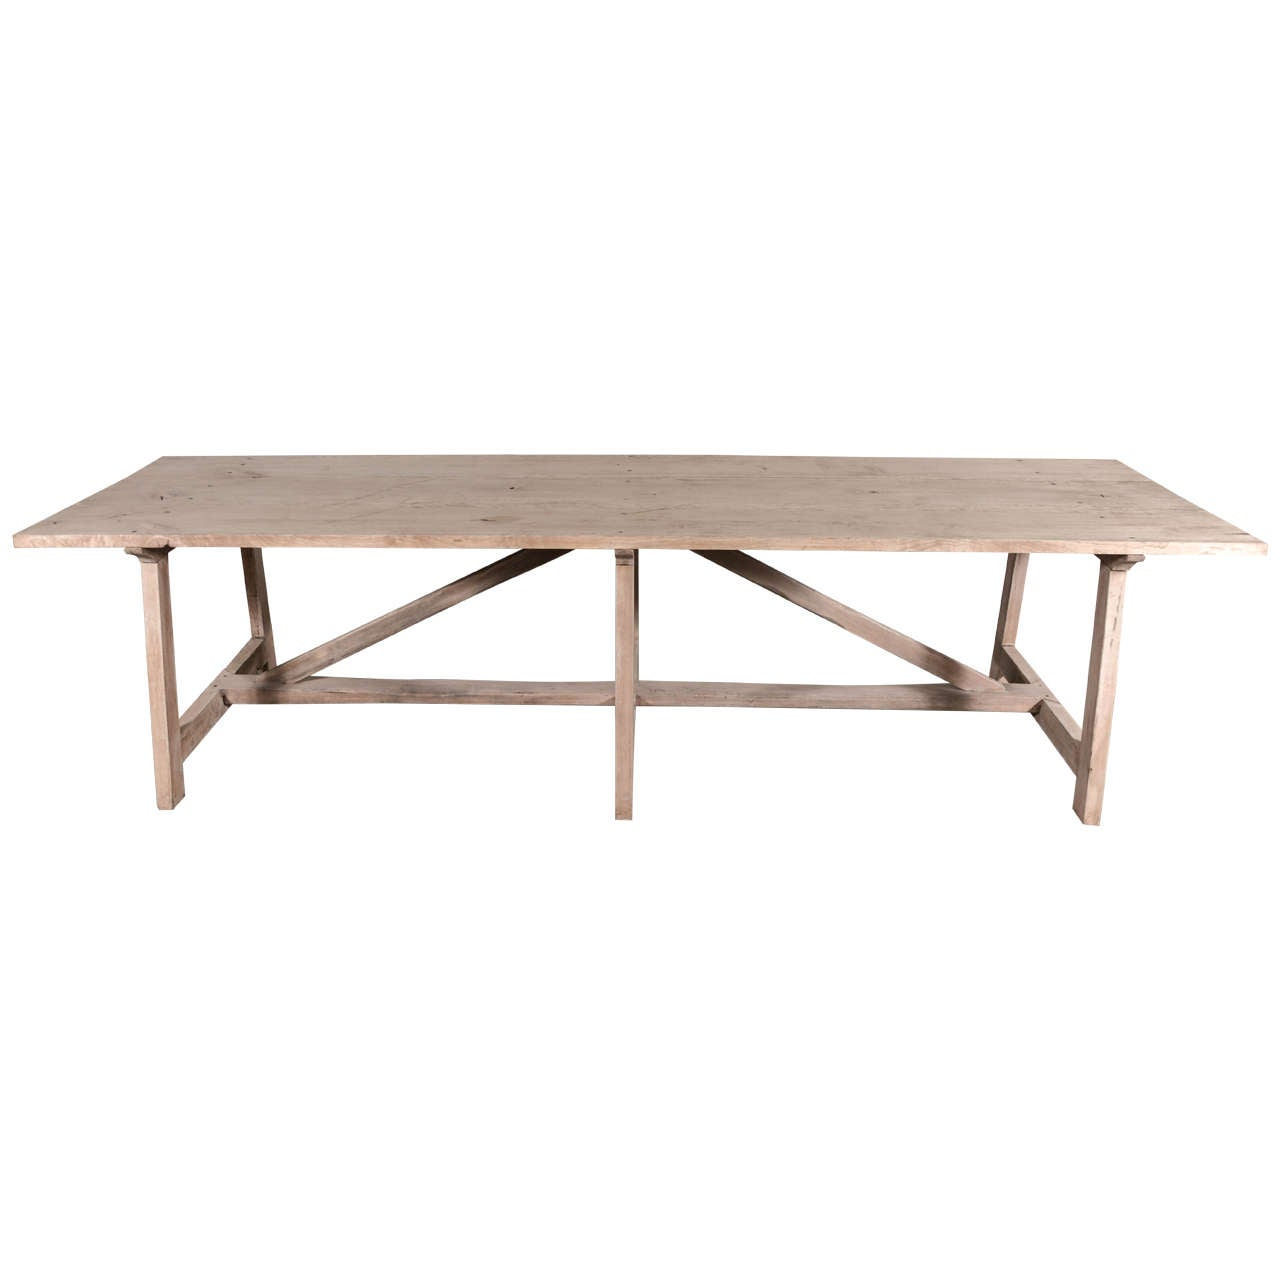 Spanish Bleached Walnut Dining Table At Stdibs - Bleached wood dining table